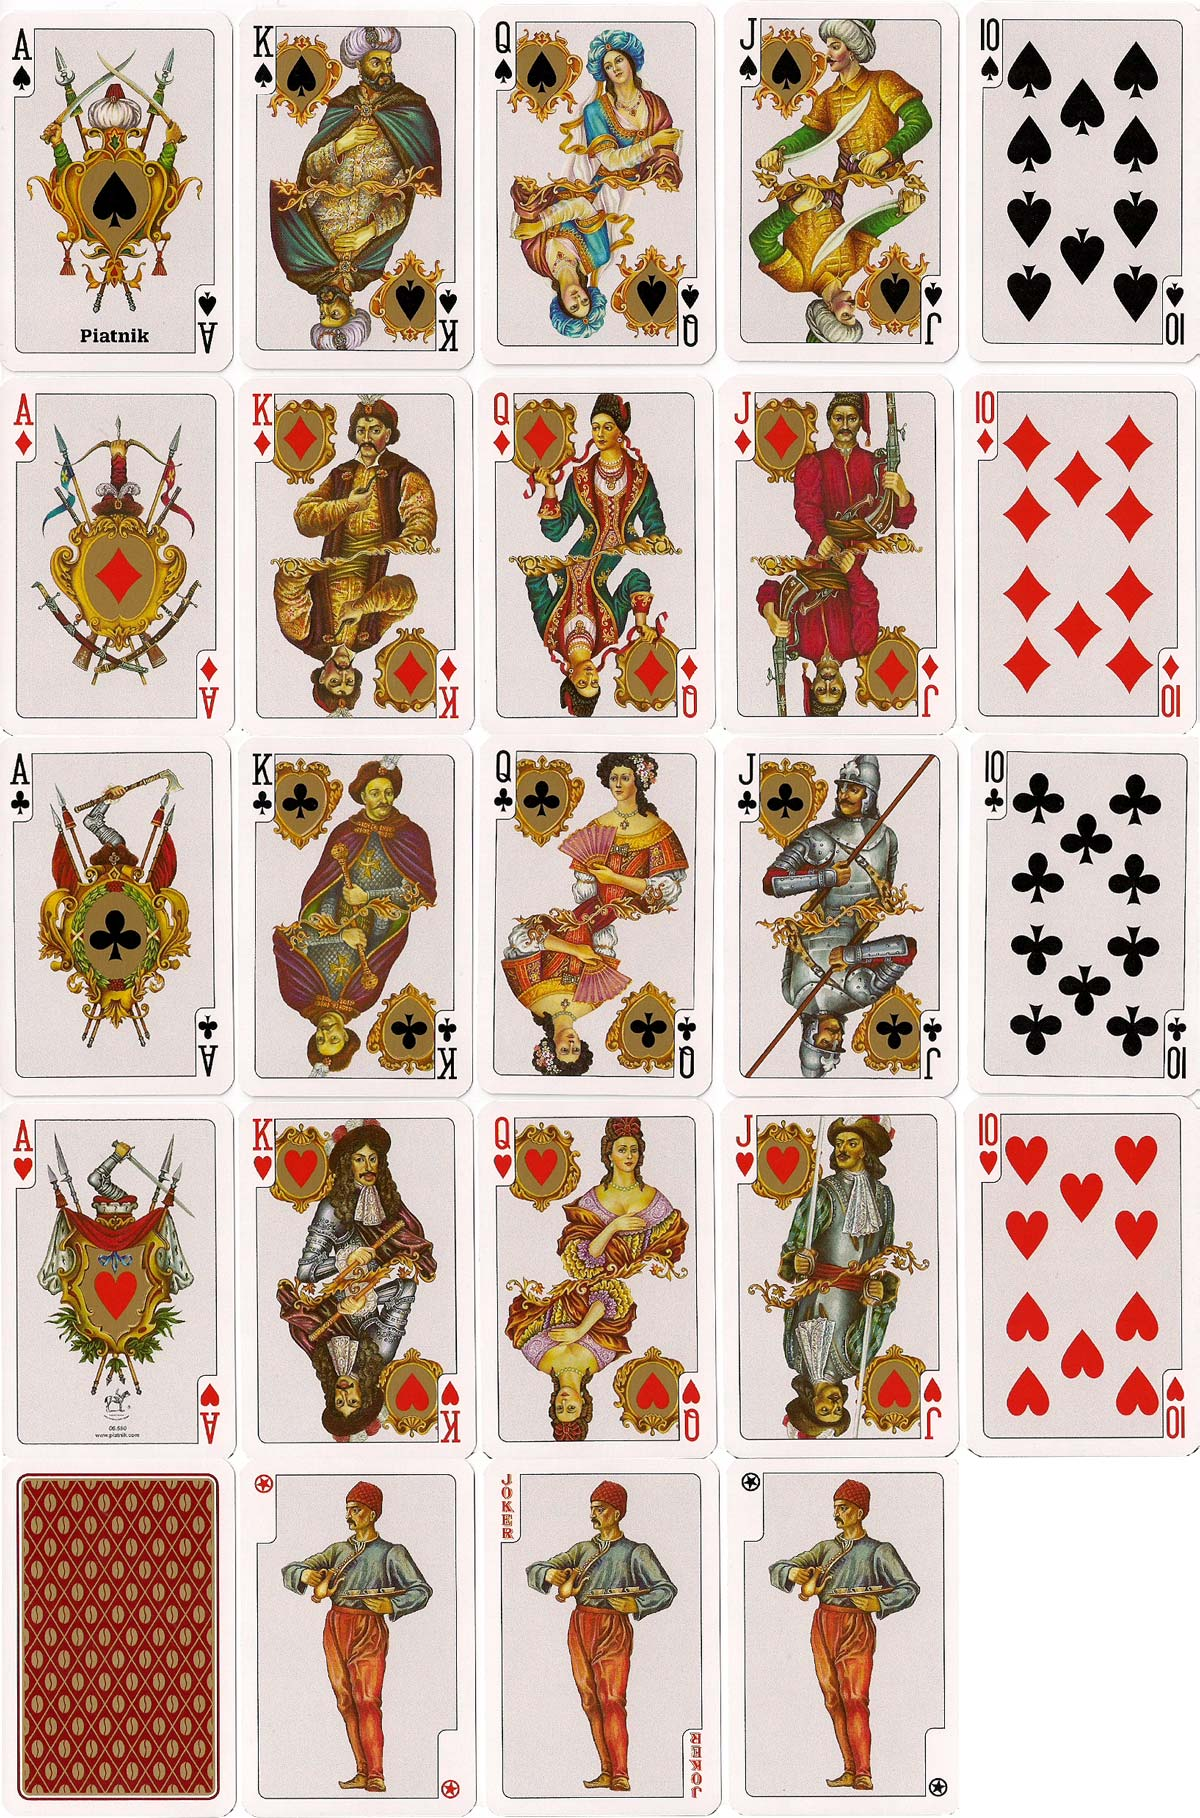 """Vienna Melange"" Playing Cards, Piatnik 1998, 2002"